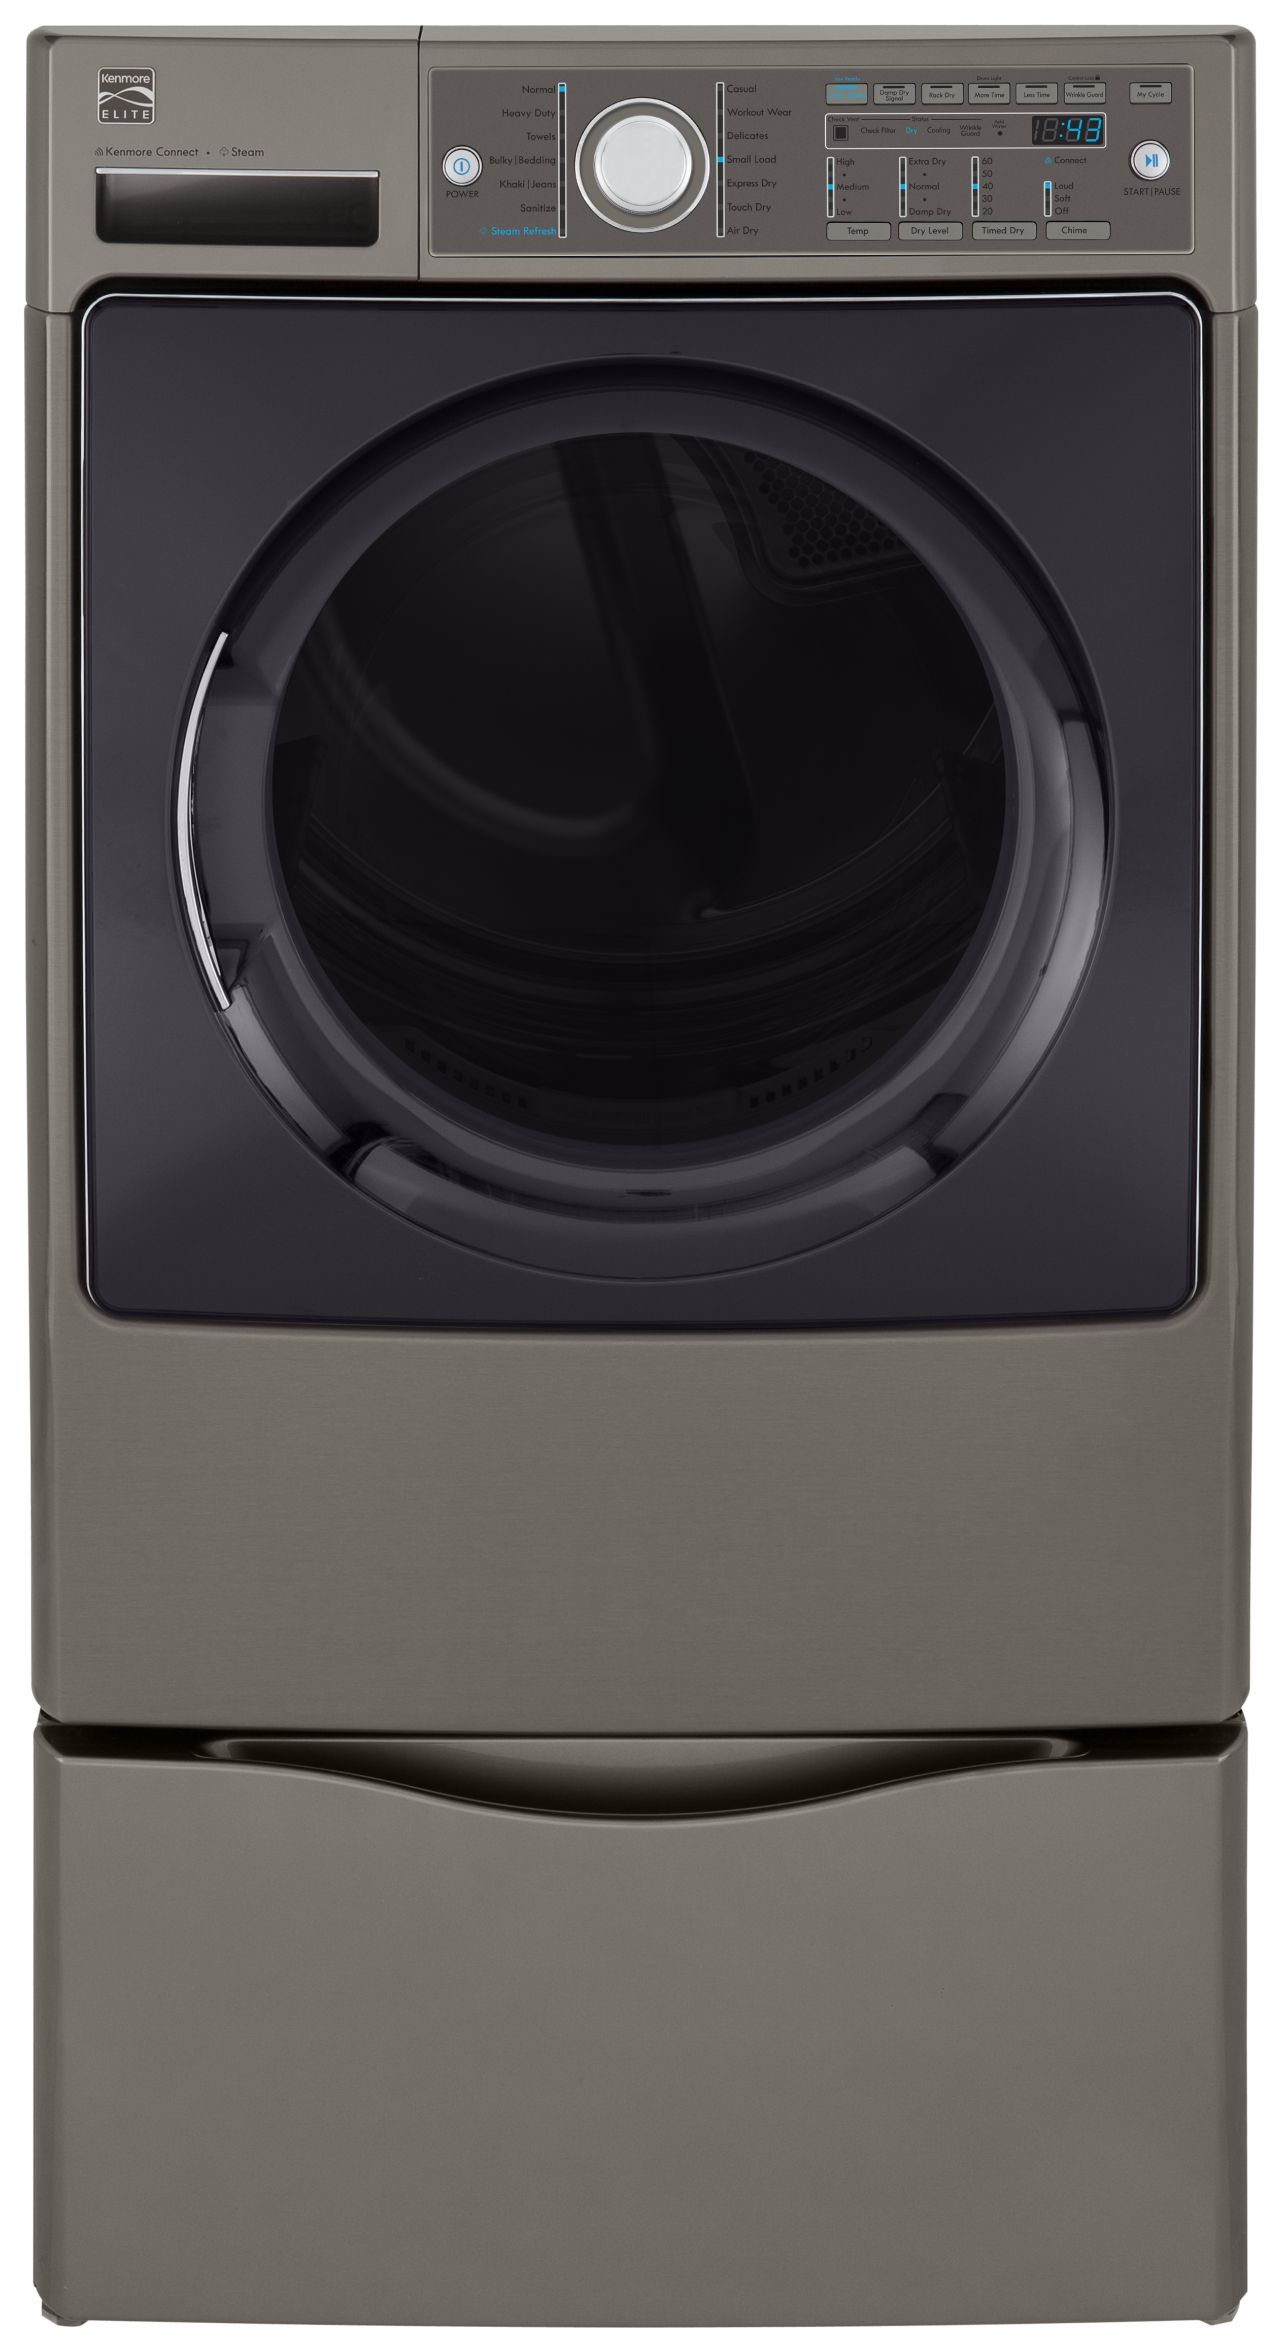 Kenmore Elite 7.4 cu. ft. Electric Steam Dryer- Metallic Silver